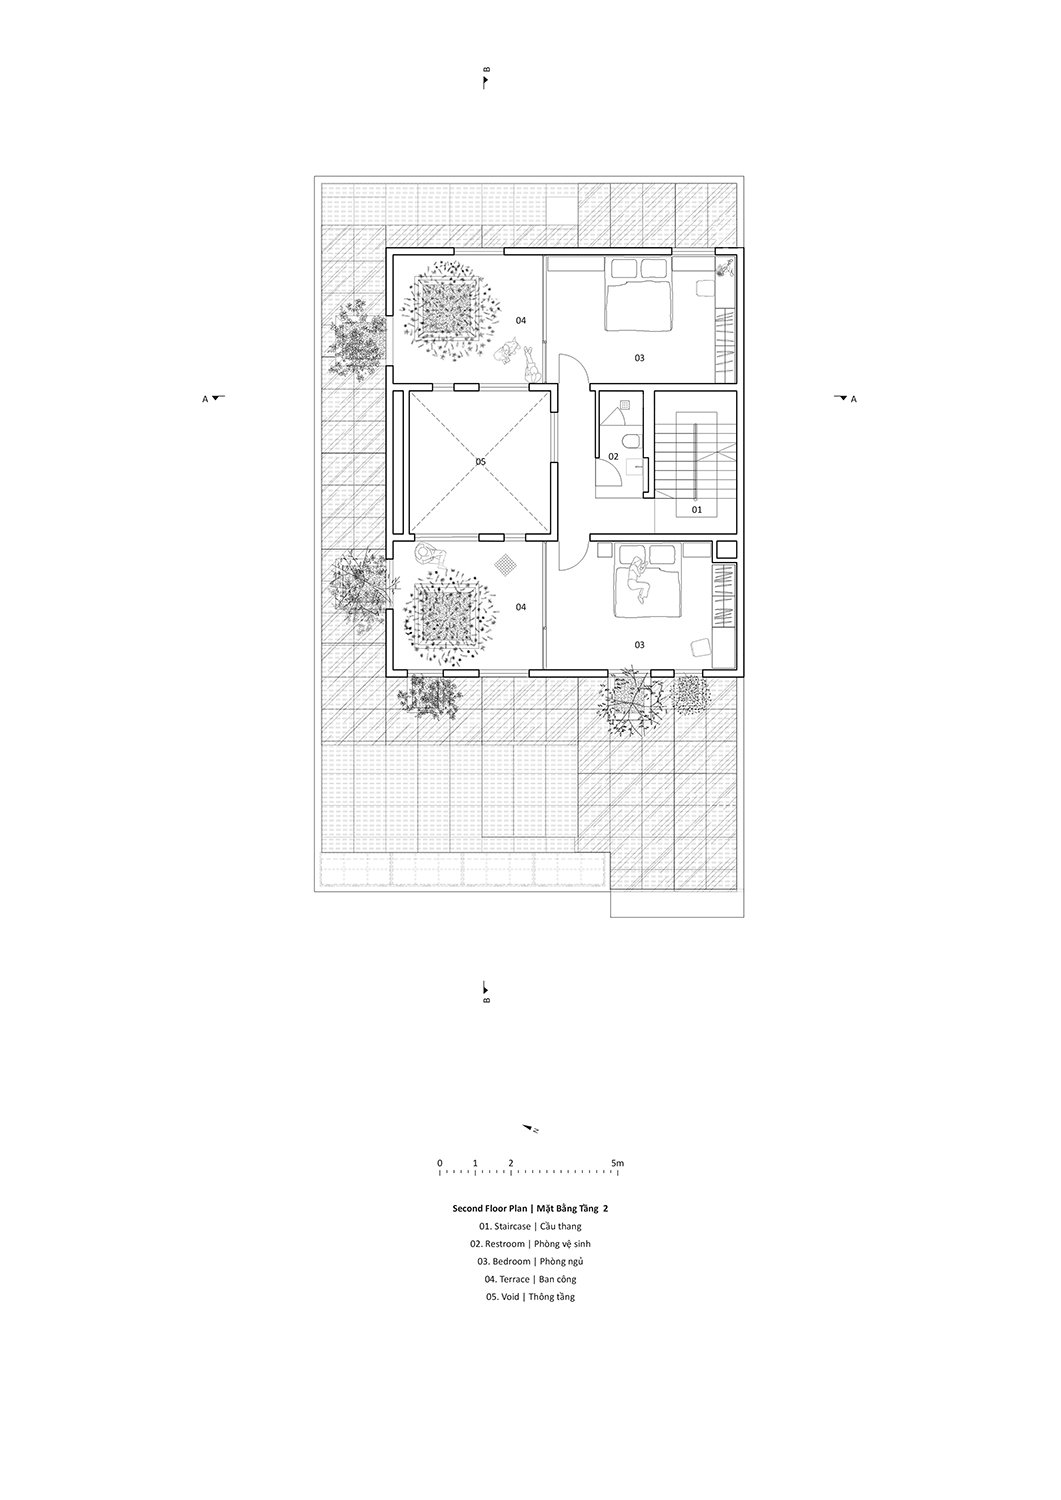 Second floor plan Le Thanh Thuong}